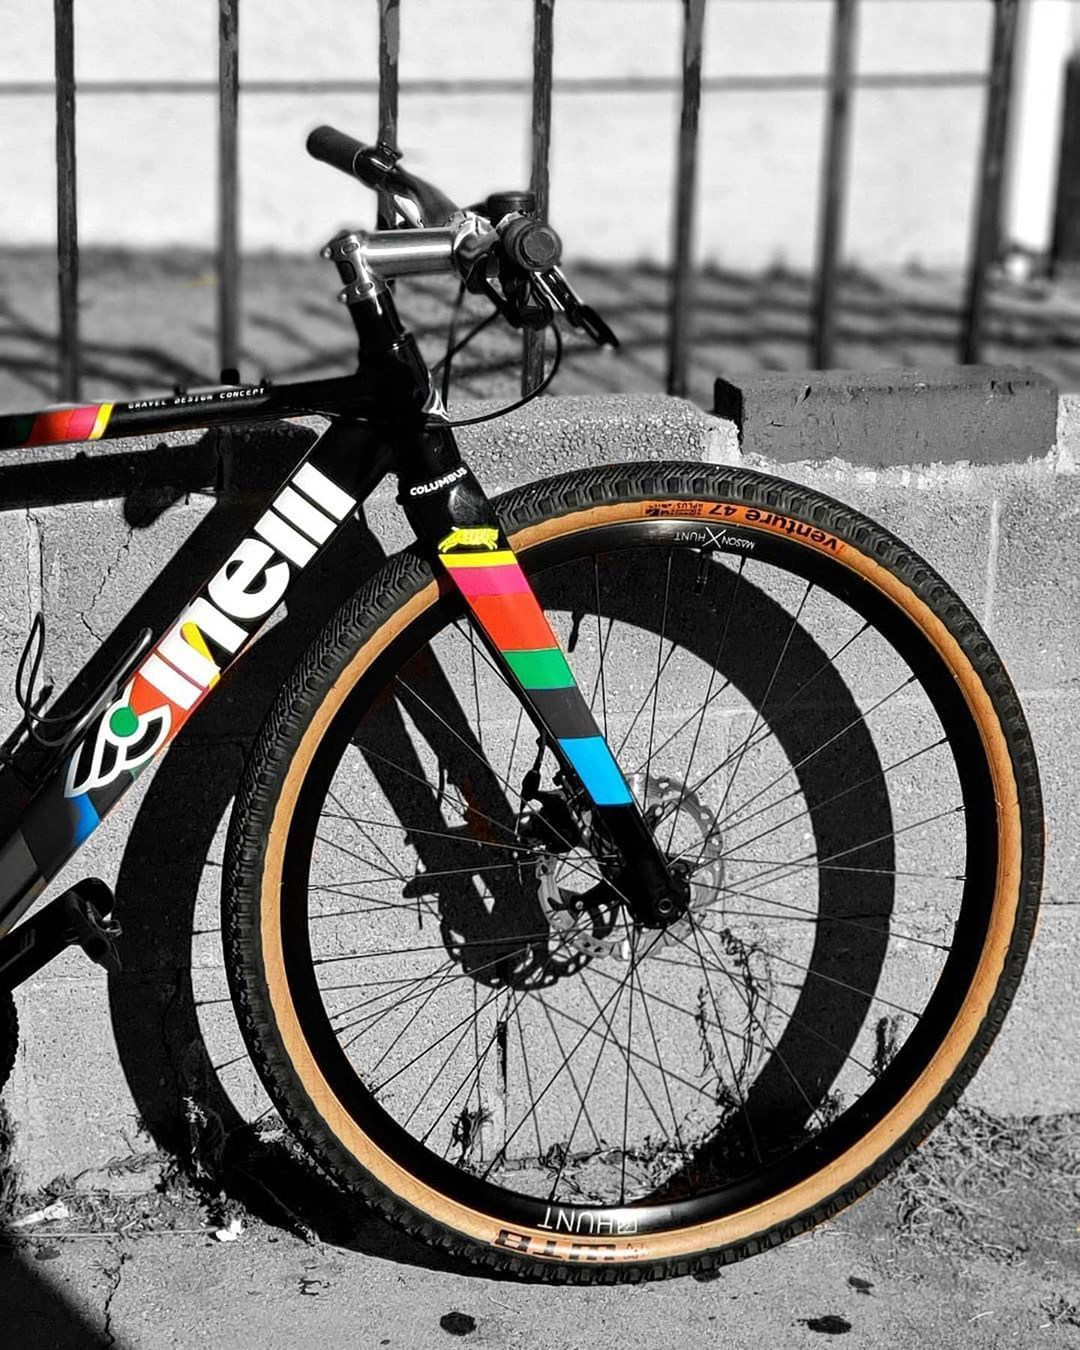 Cinelli Usa On Instagram Show Us Your Zydeco Build Setup And